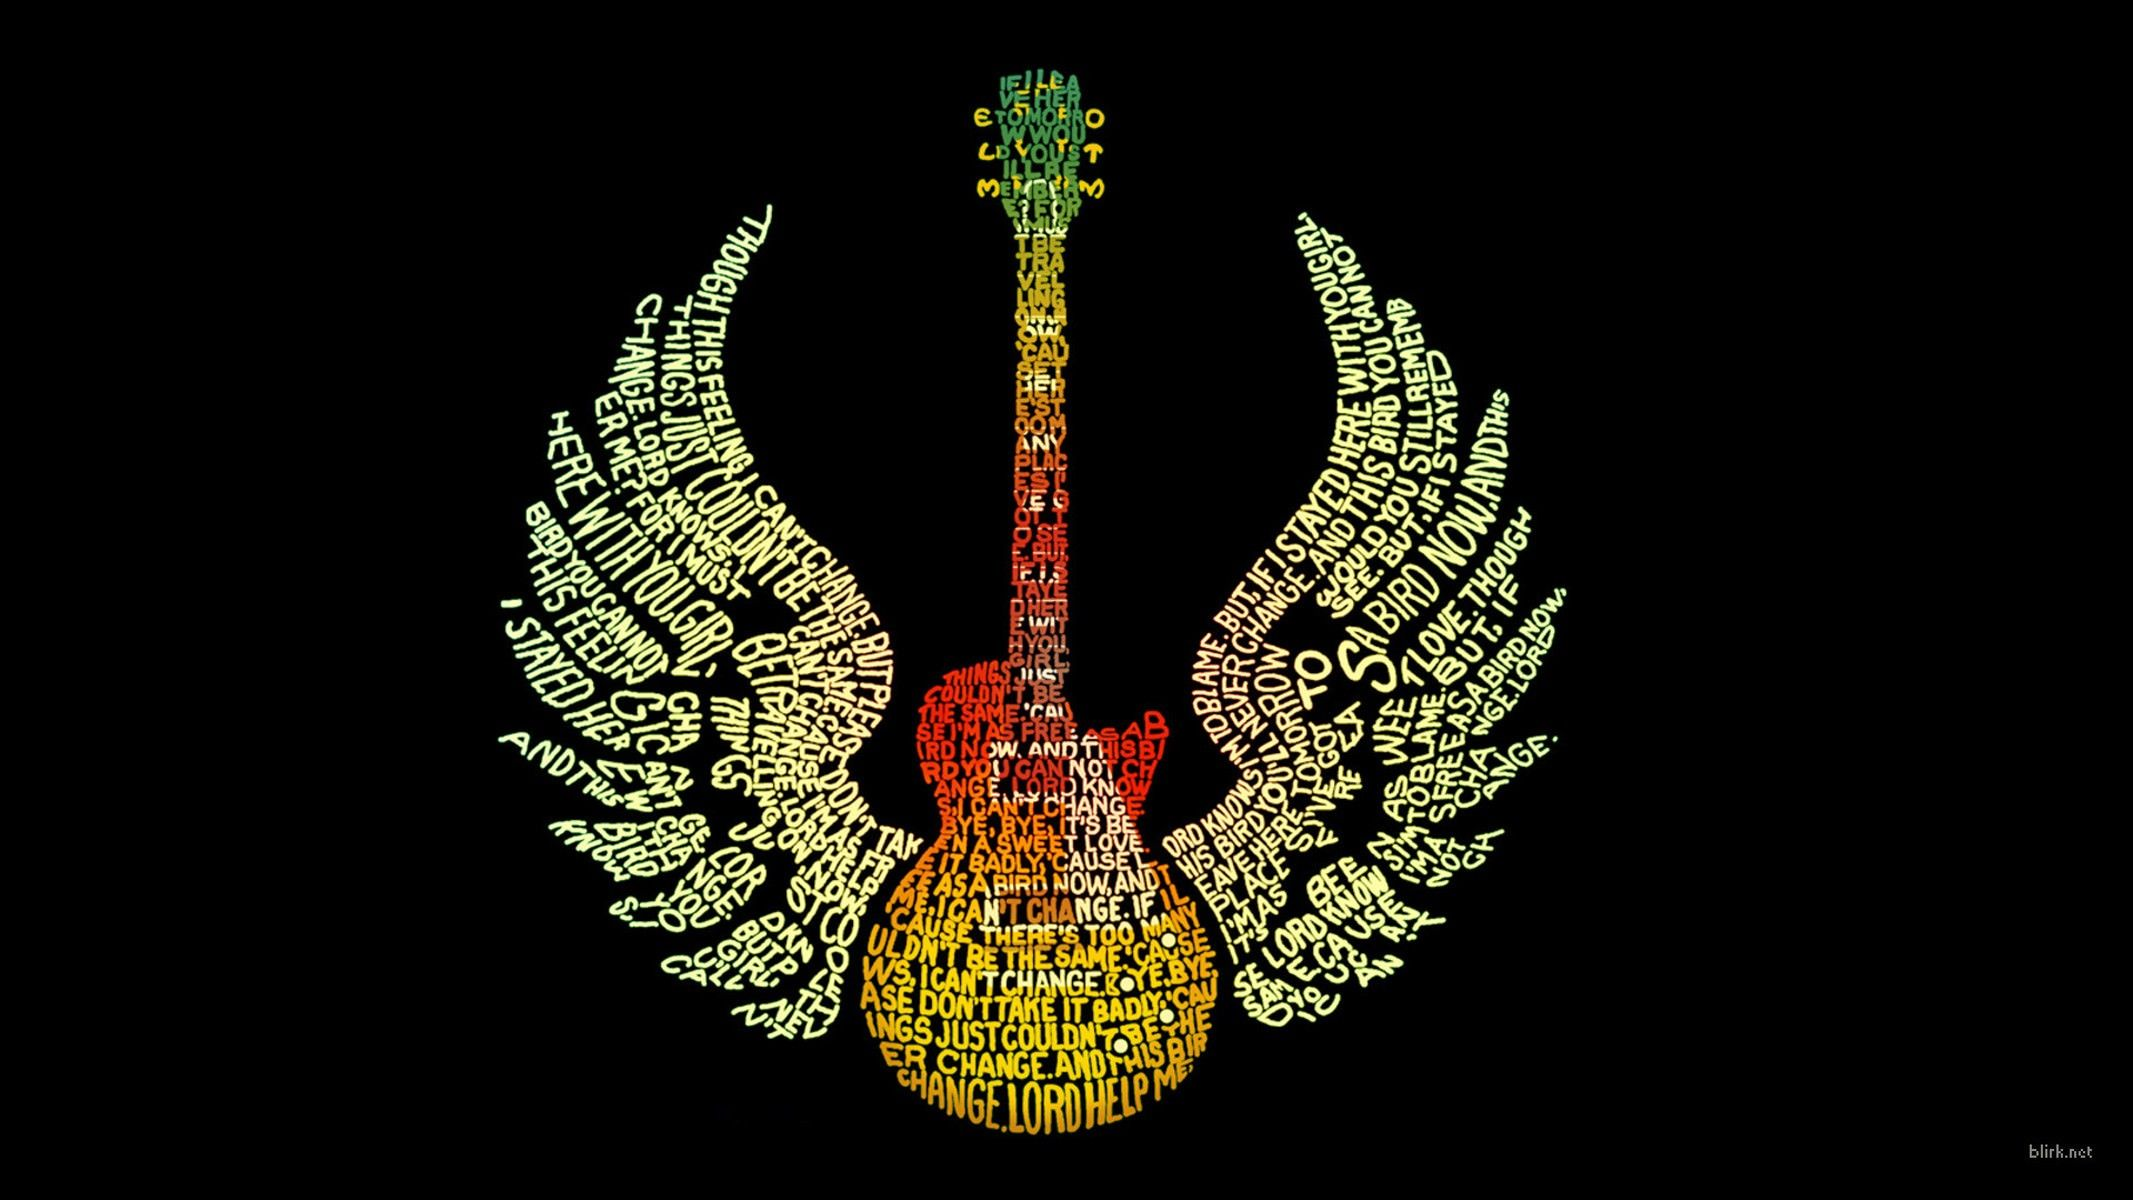 84 Animation Wallpapers For Mobile Phone And Desktop Pc Typography Wallpaper Guitar Pics Animated Wallpapers For Mobile